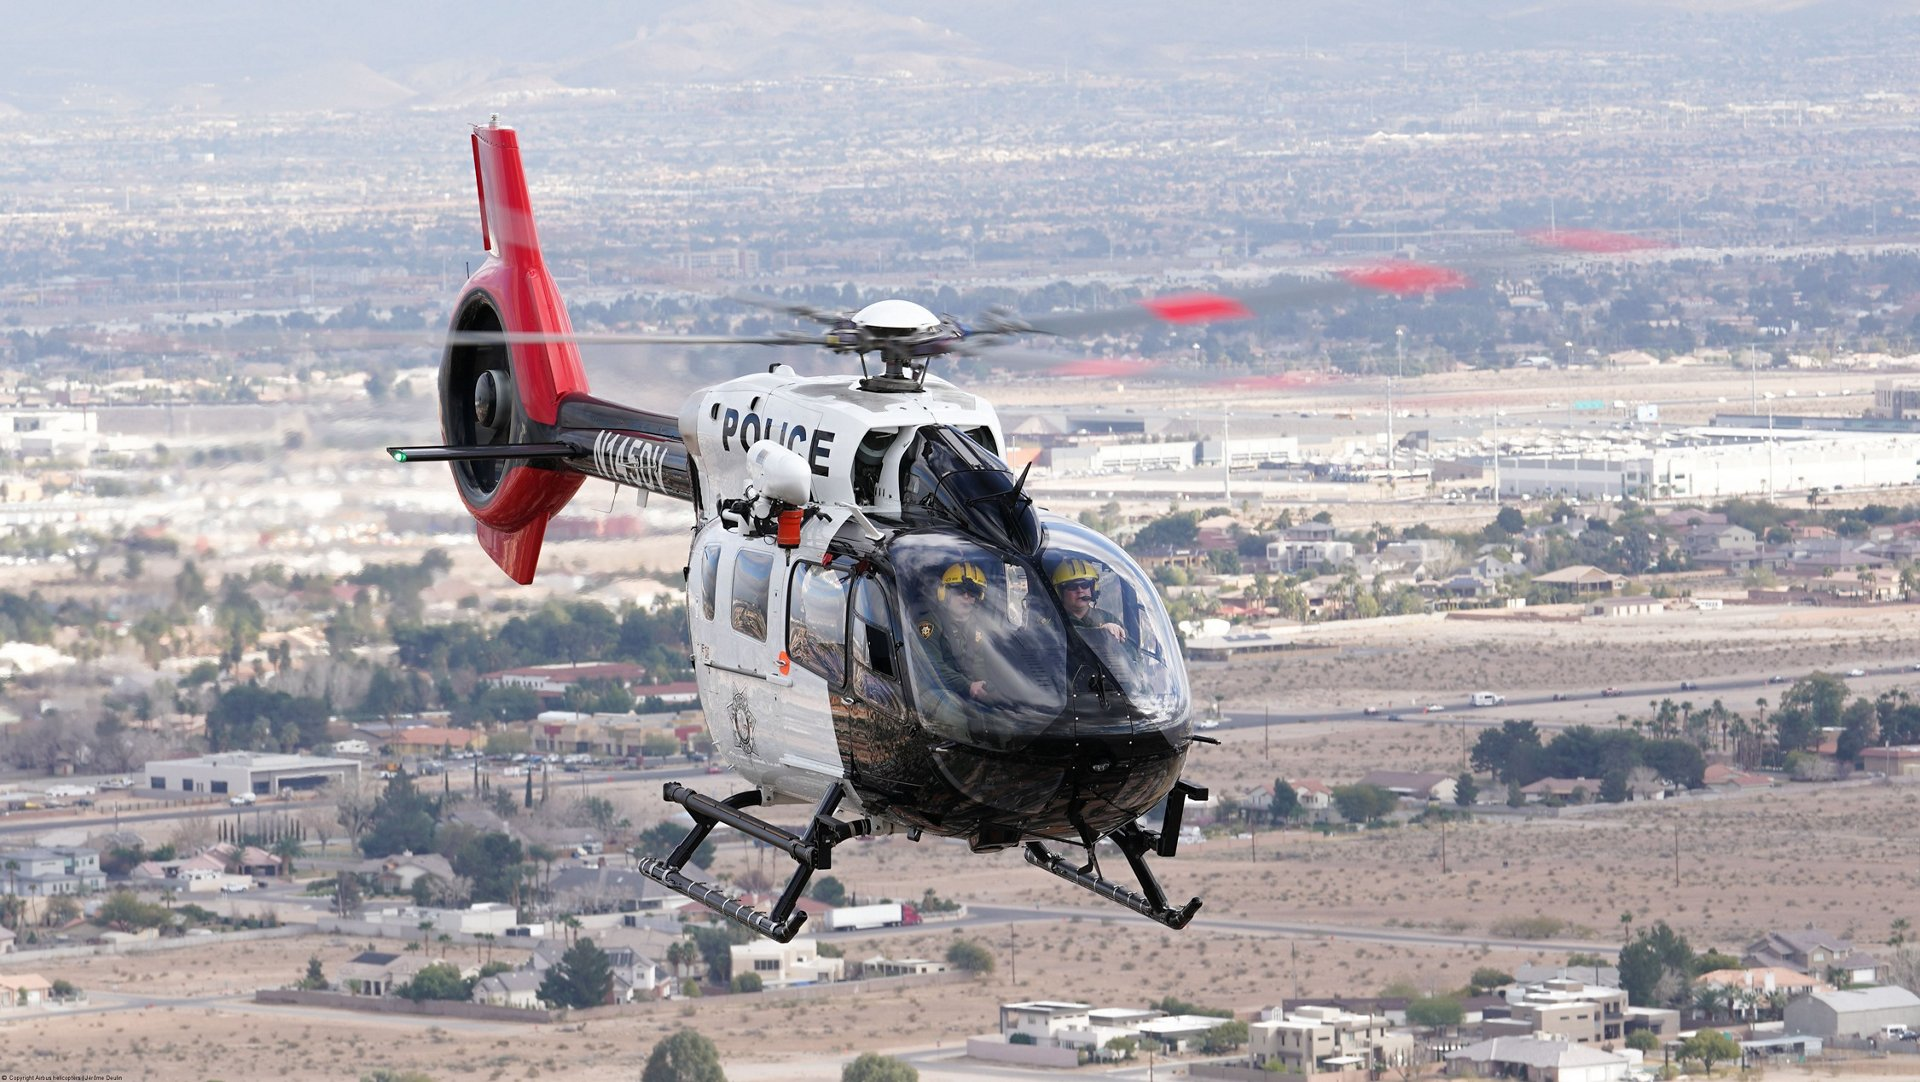 The crew of the Las Vegas Metropolitan Police Department's air unit in an H145 helicopter. Airbus has more than 800 helicopters in service in law enforcement with the H125, H135 and H145, contributing to Airbus' nearly 60 percent share of the global law enforcement fleet over the last 10 years.